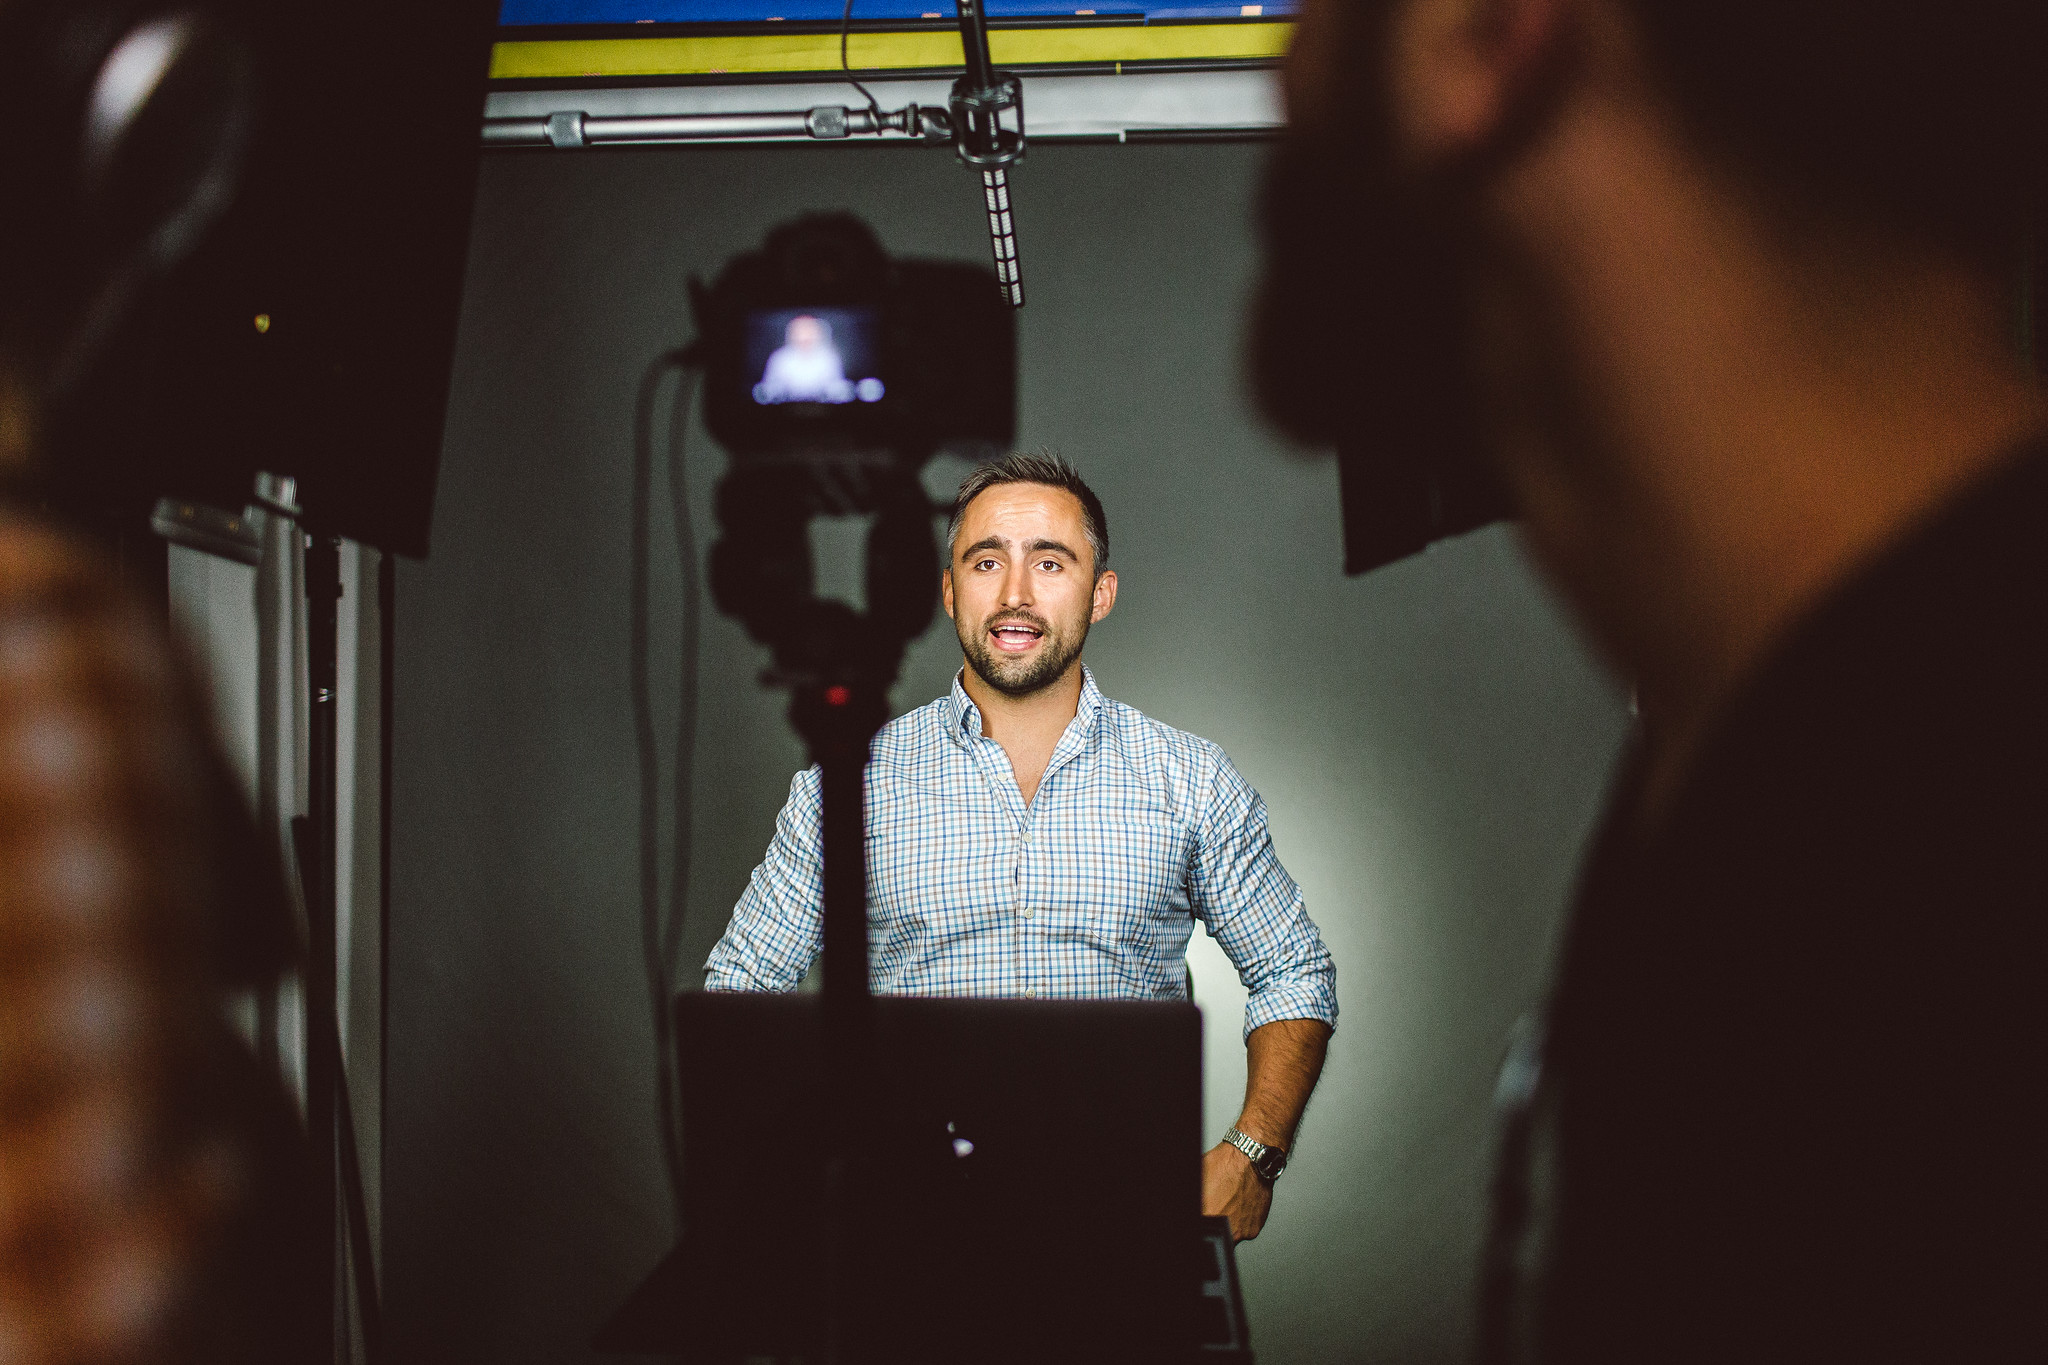 The Wistia Guide to Video Marketing